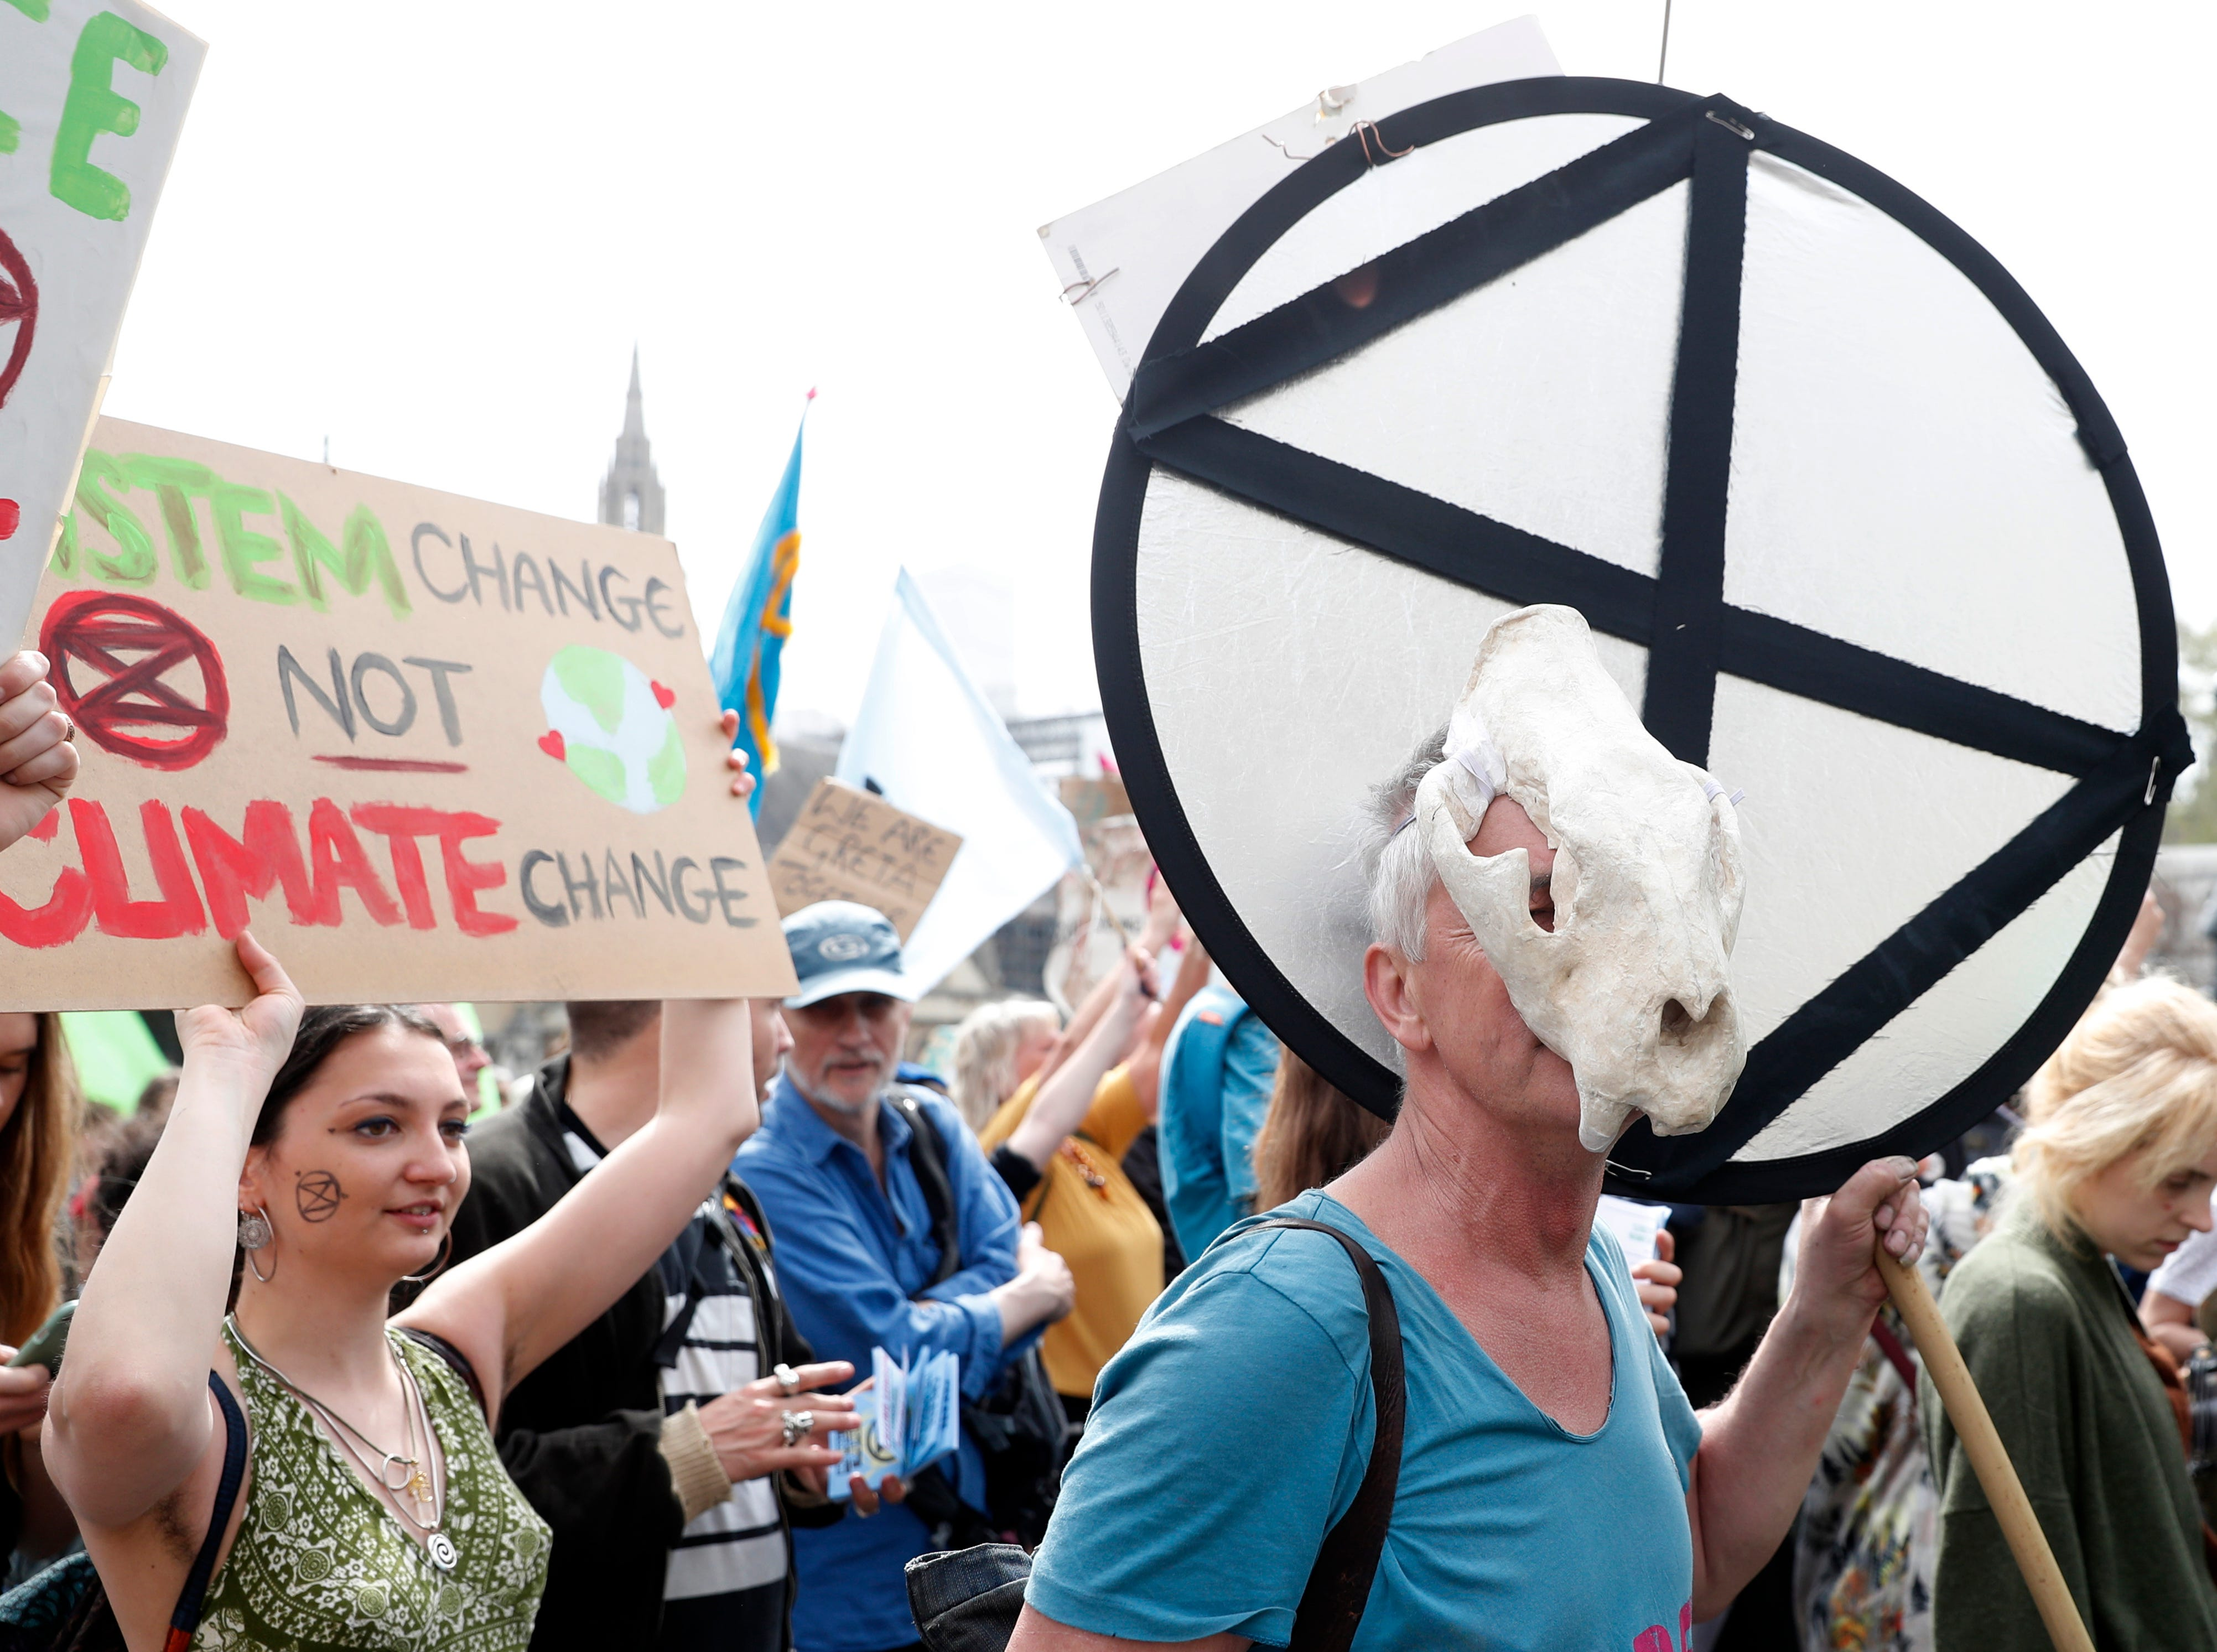 A protester wearing an animal mask arrives with others in Parliament Square, in London, Tuesday April 23, 2019, during a climate protest. The non-violent protest group, Extinction Rebellion, is seeking negotiations with the government on its demand to make slowing climate change a top priority.